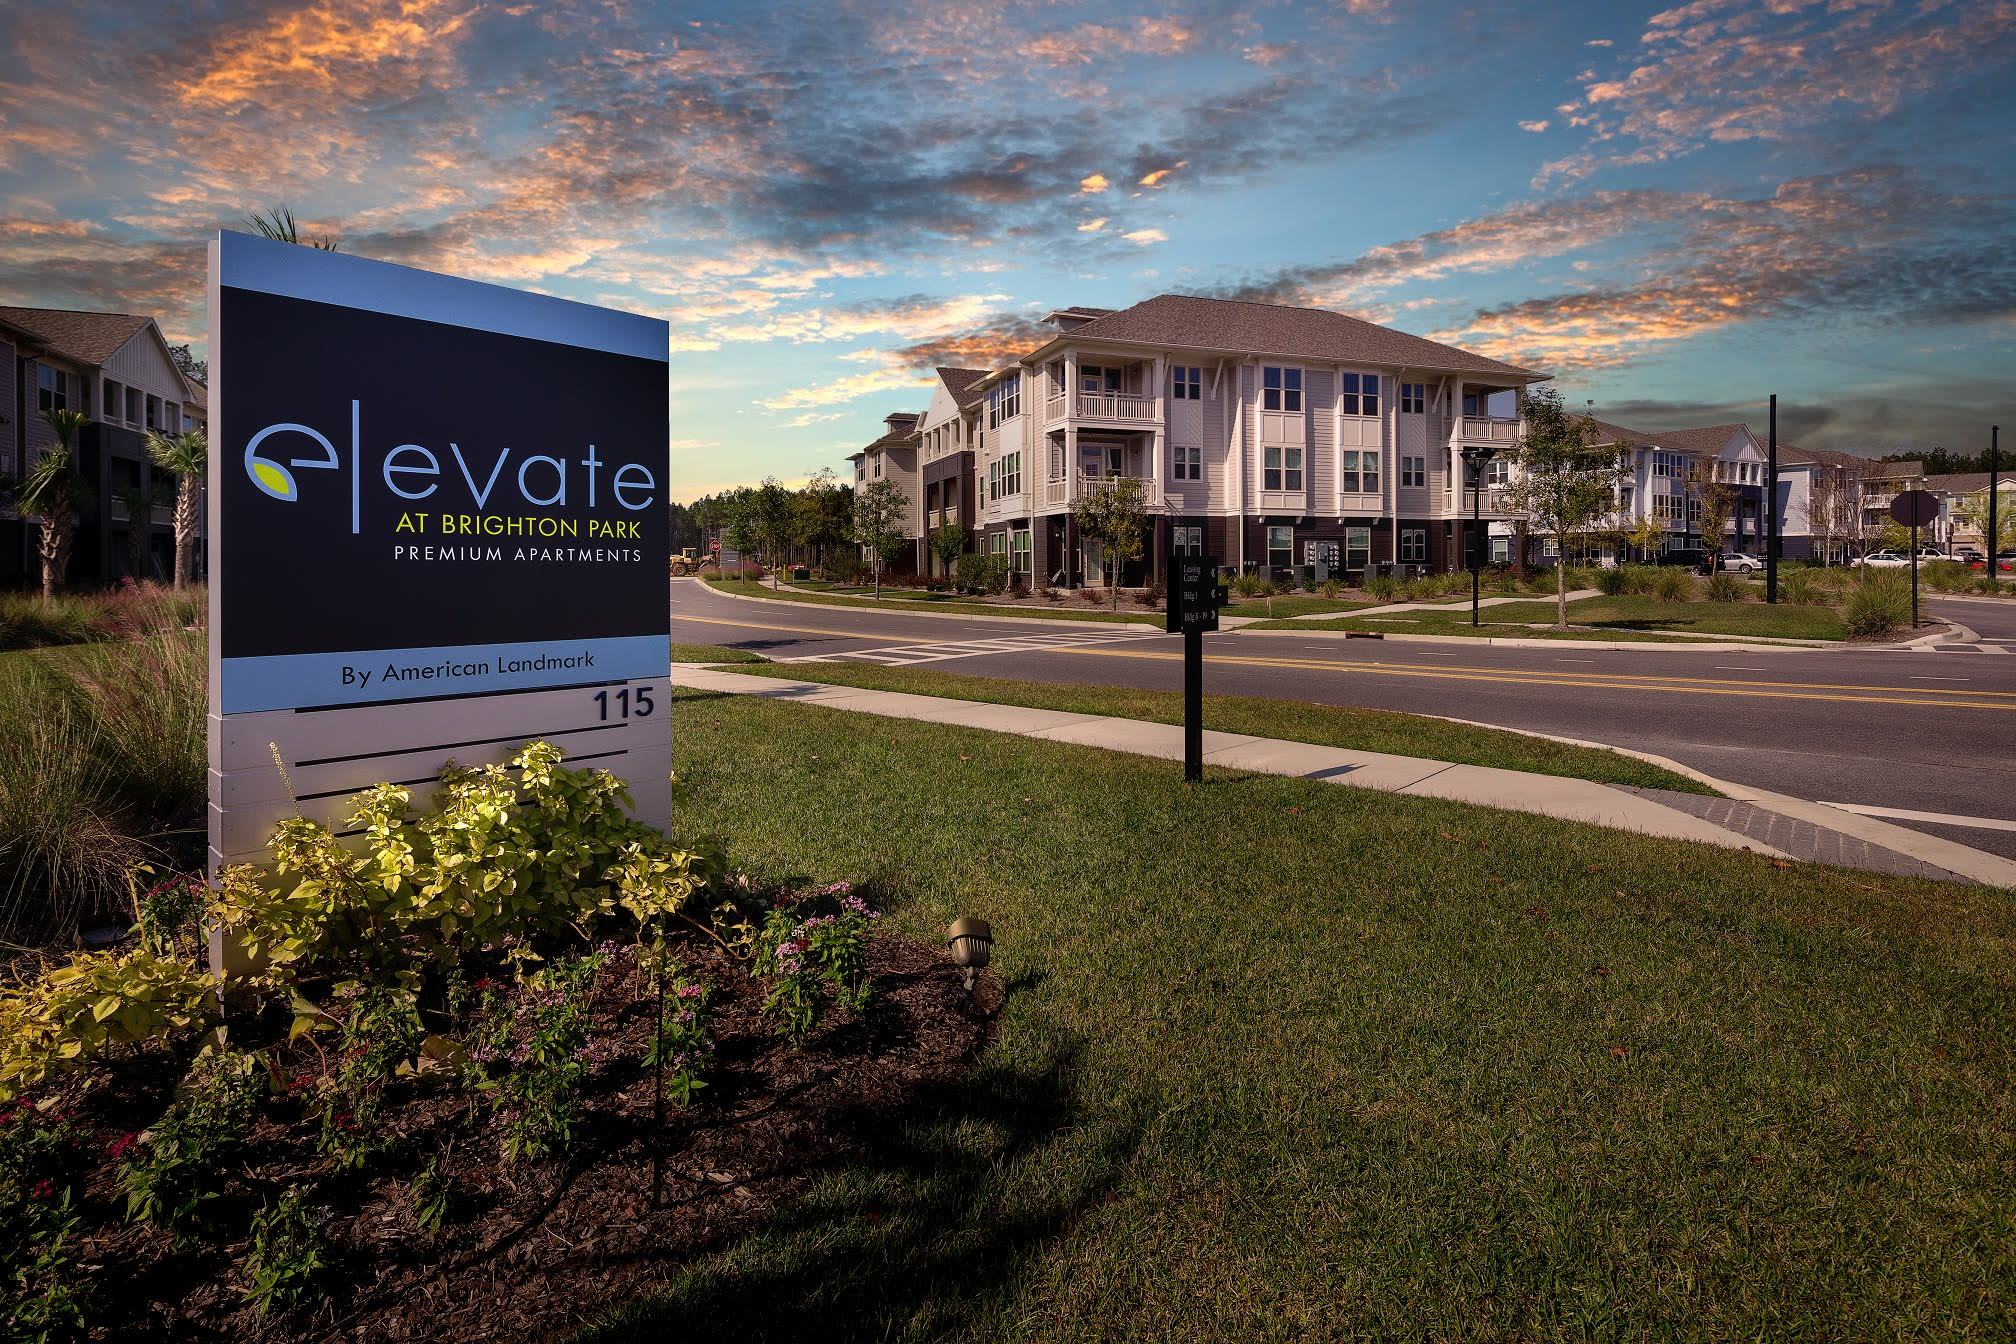 Exterior sunset view of Elevate at Brighton Park in Summerville, South Carolina